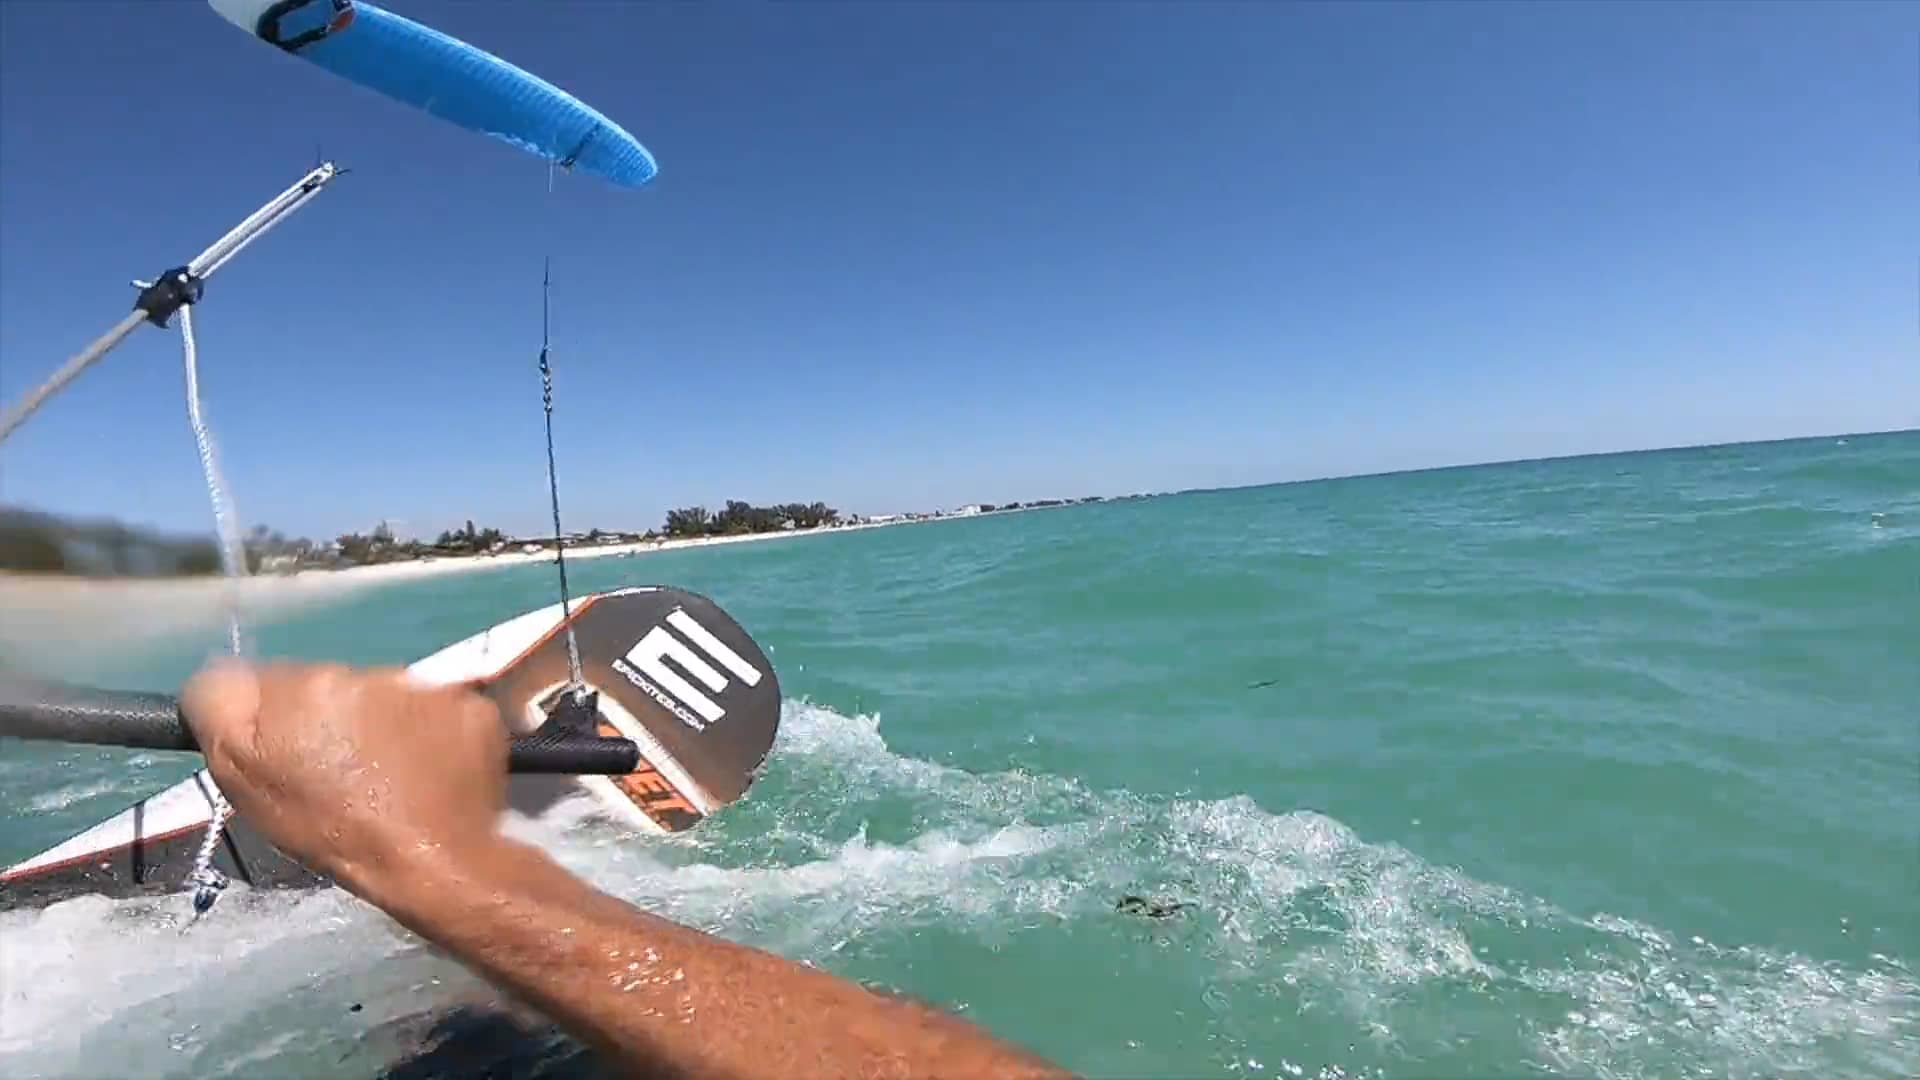 How to water start in light wind using your Foil Kite race gear - with Epic Kites Kiteboarding